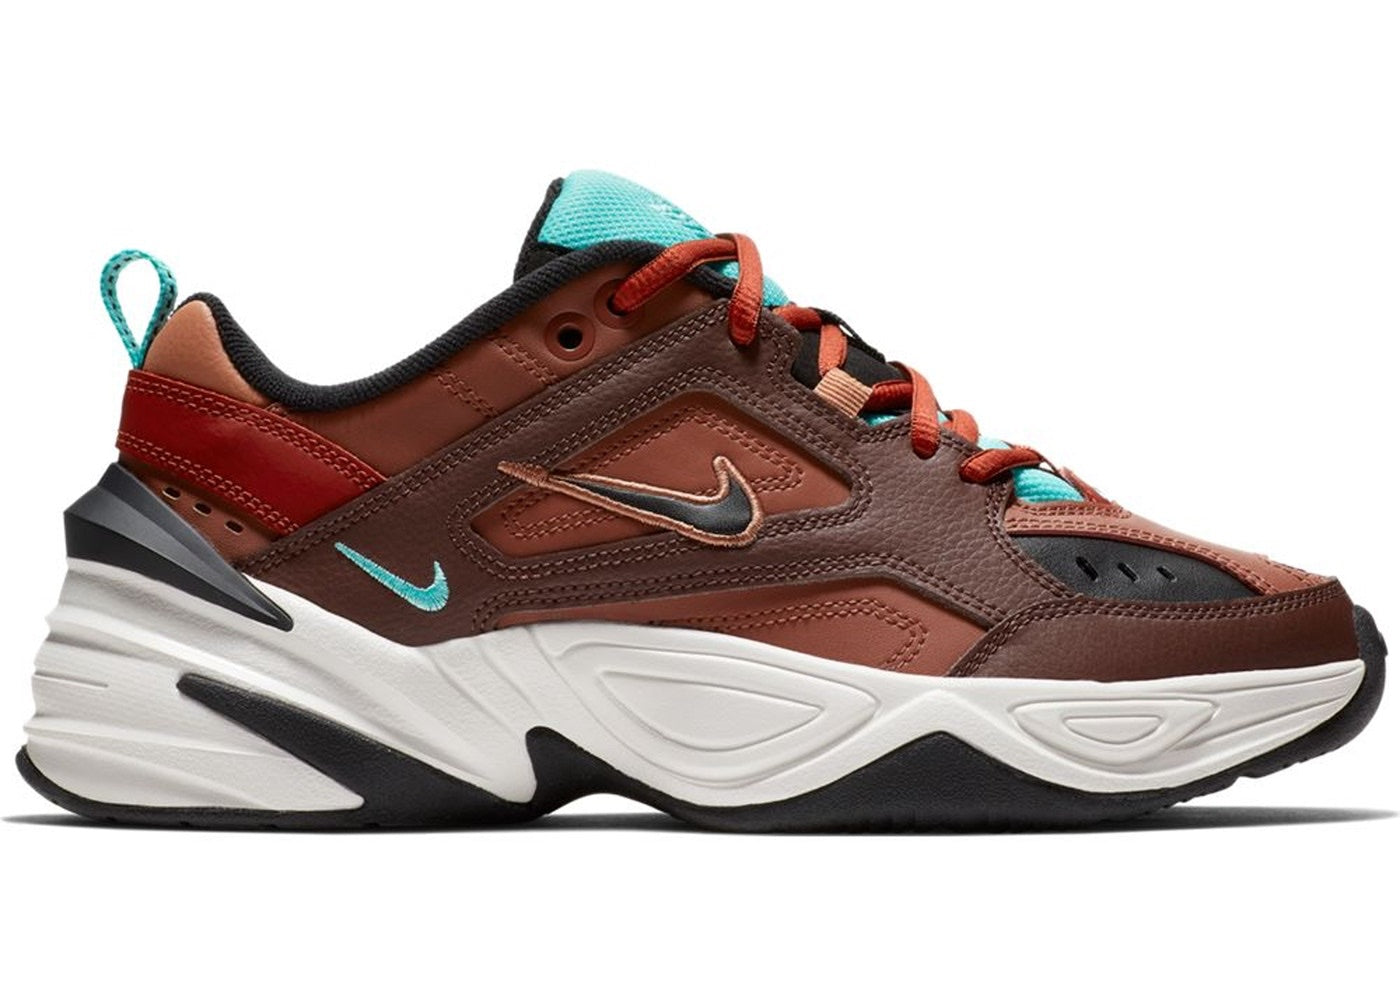 NIKE M2K TEKNO - BROWN